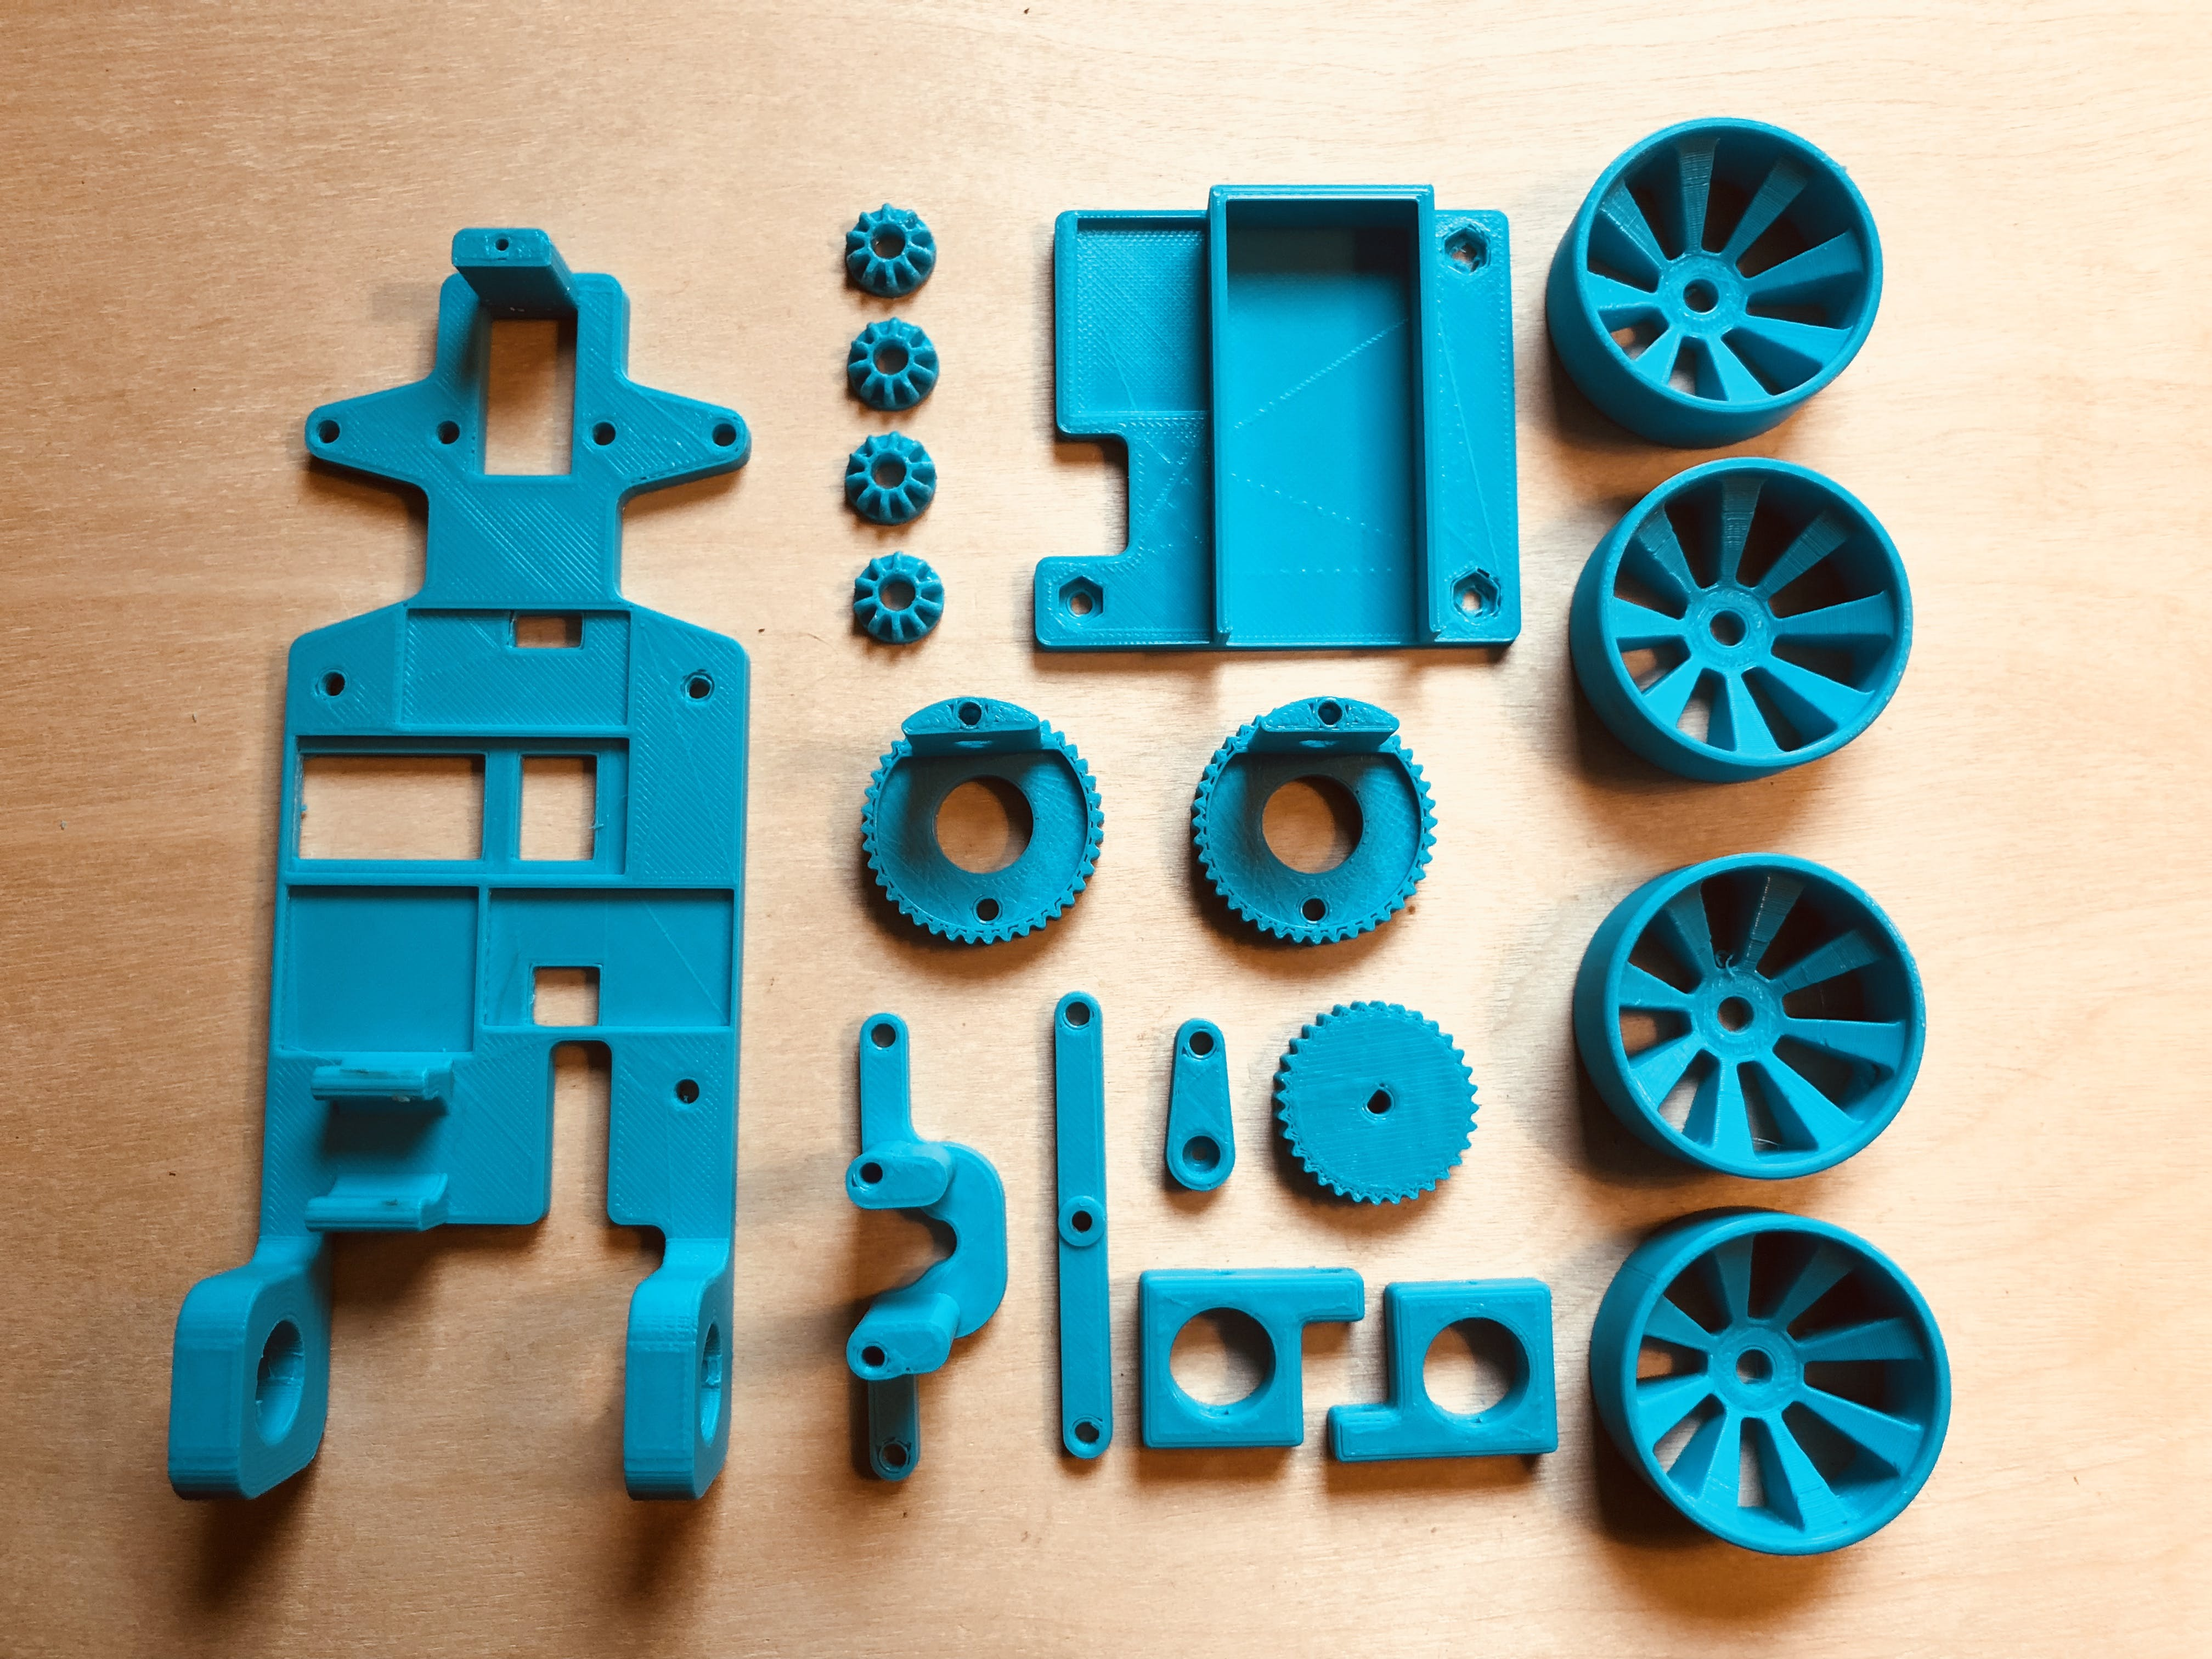 All printed parts required for a car. (Excluding the Axle Spacers... they were added later)